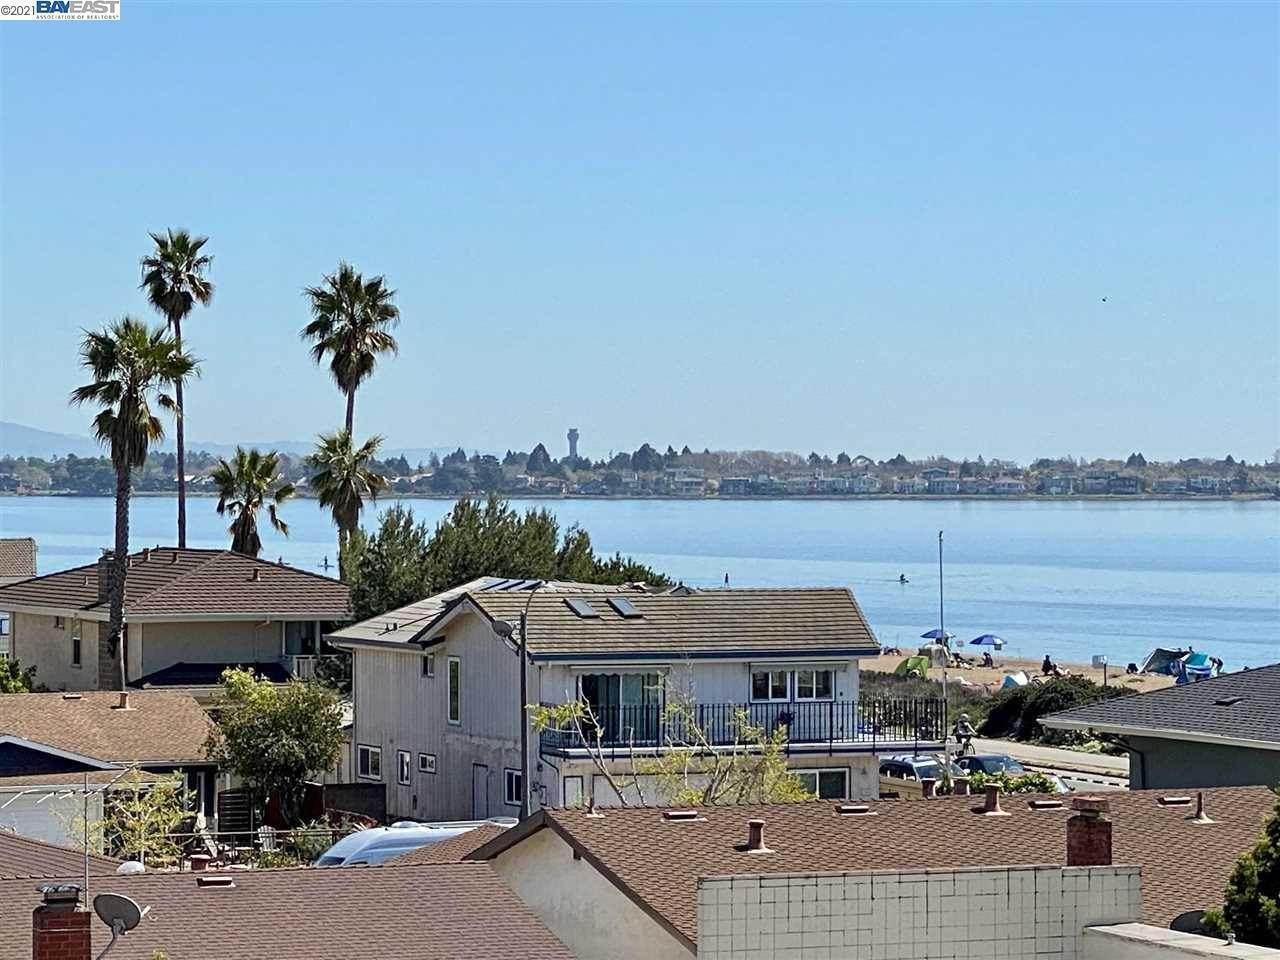 Property for Sale at 960 Shorepoint Court Alameda, California 94501 United States